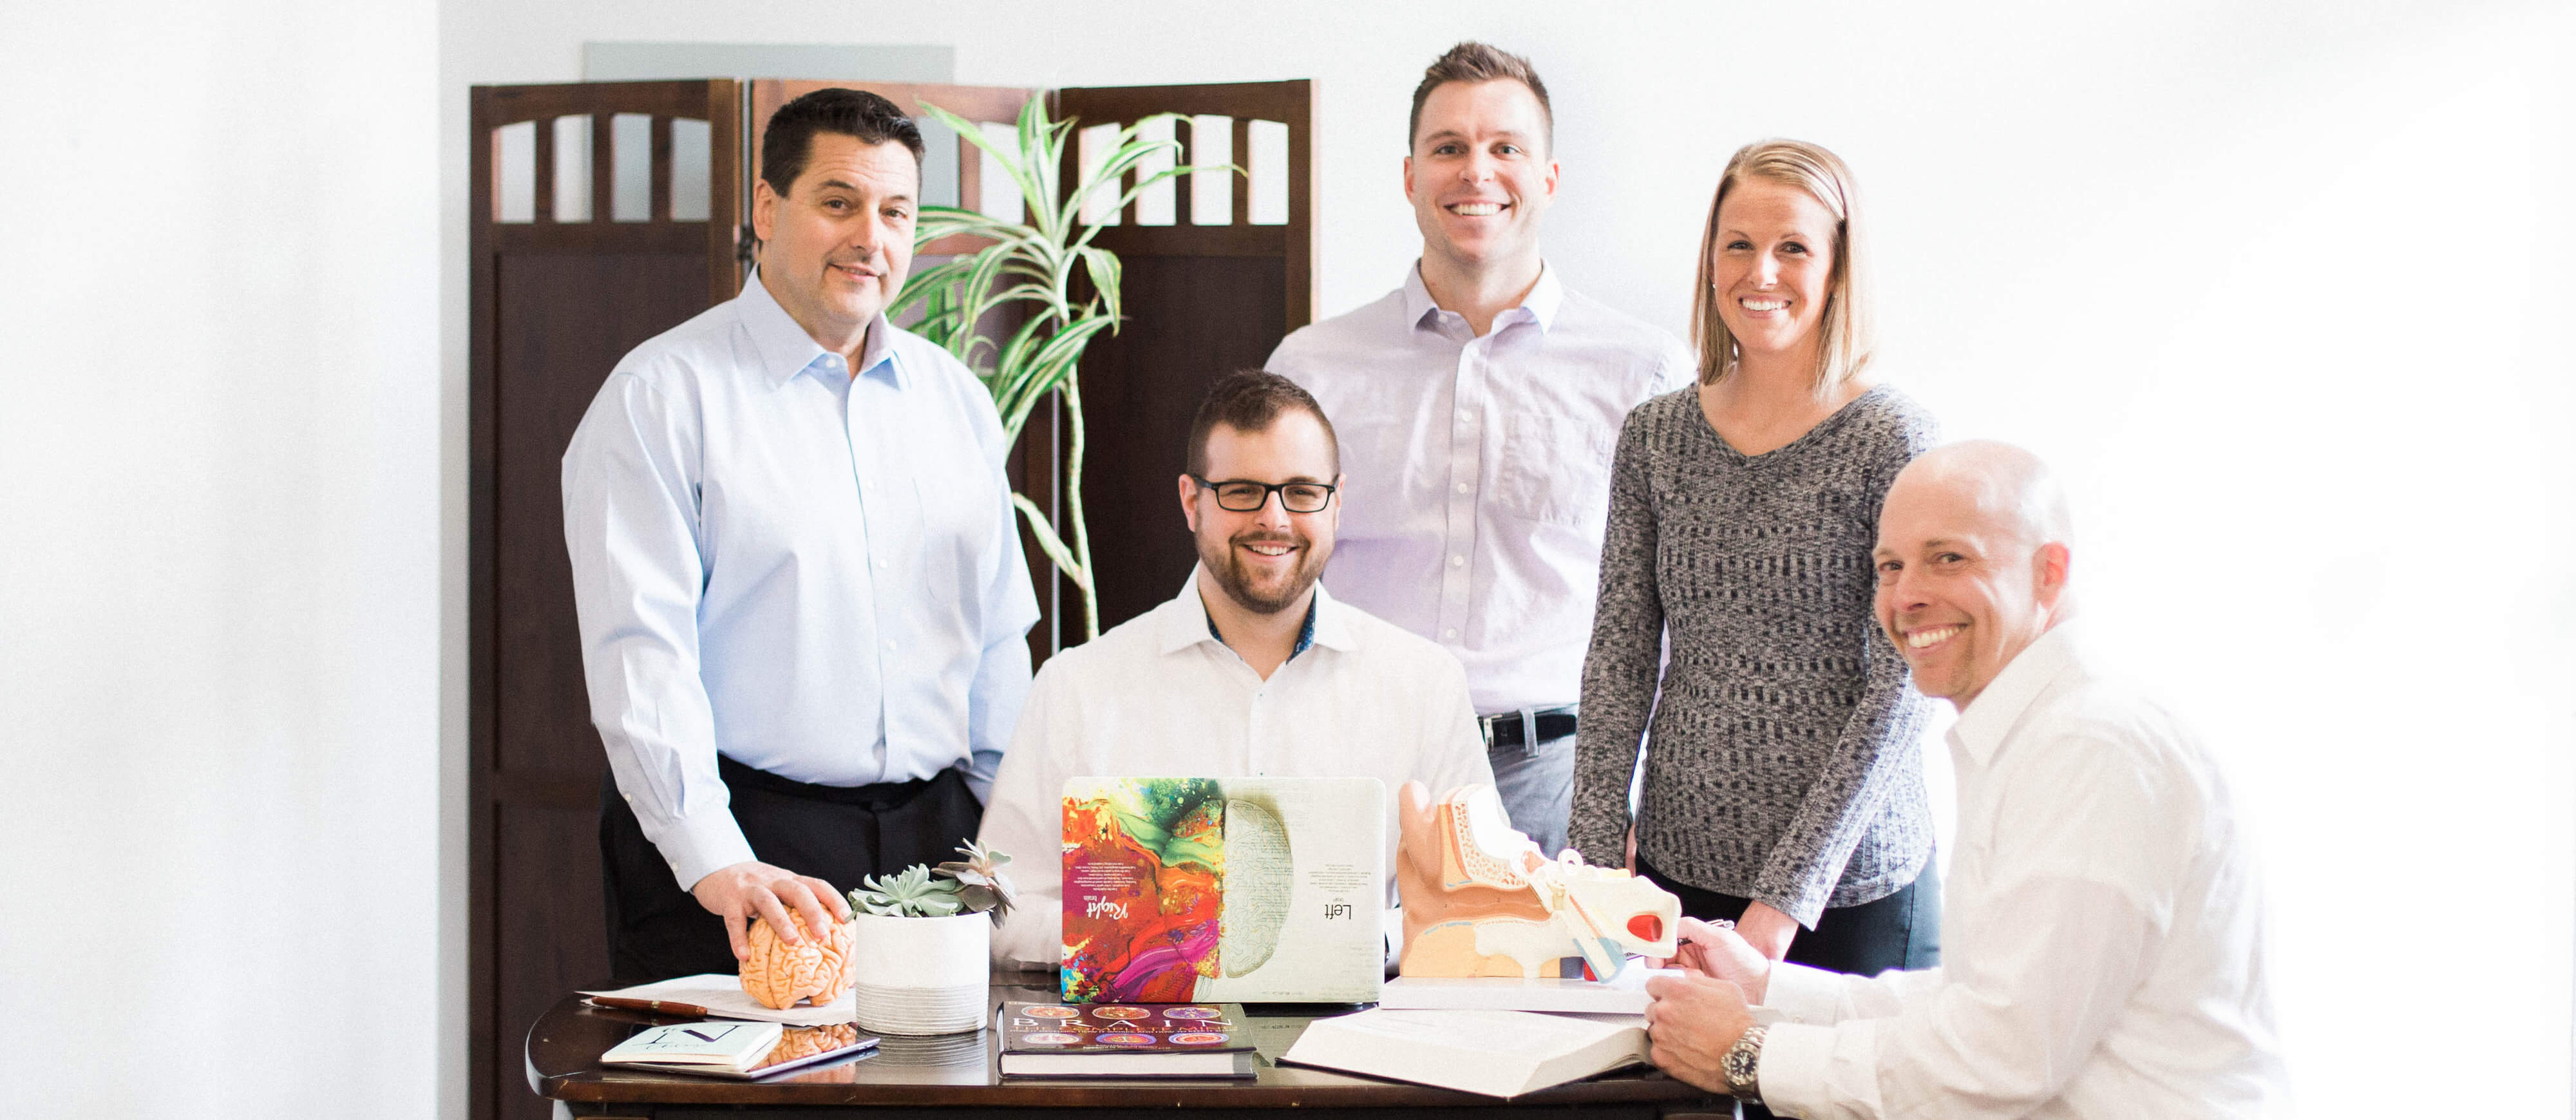 Functional Neurology & Concussion Treatment - Chicago, IL | NWI